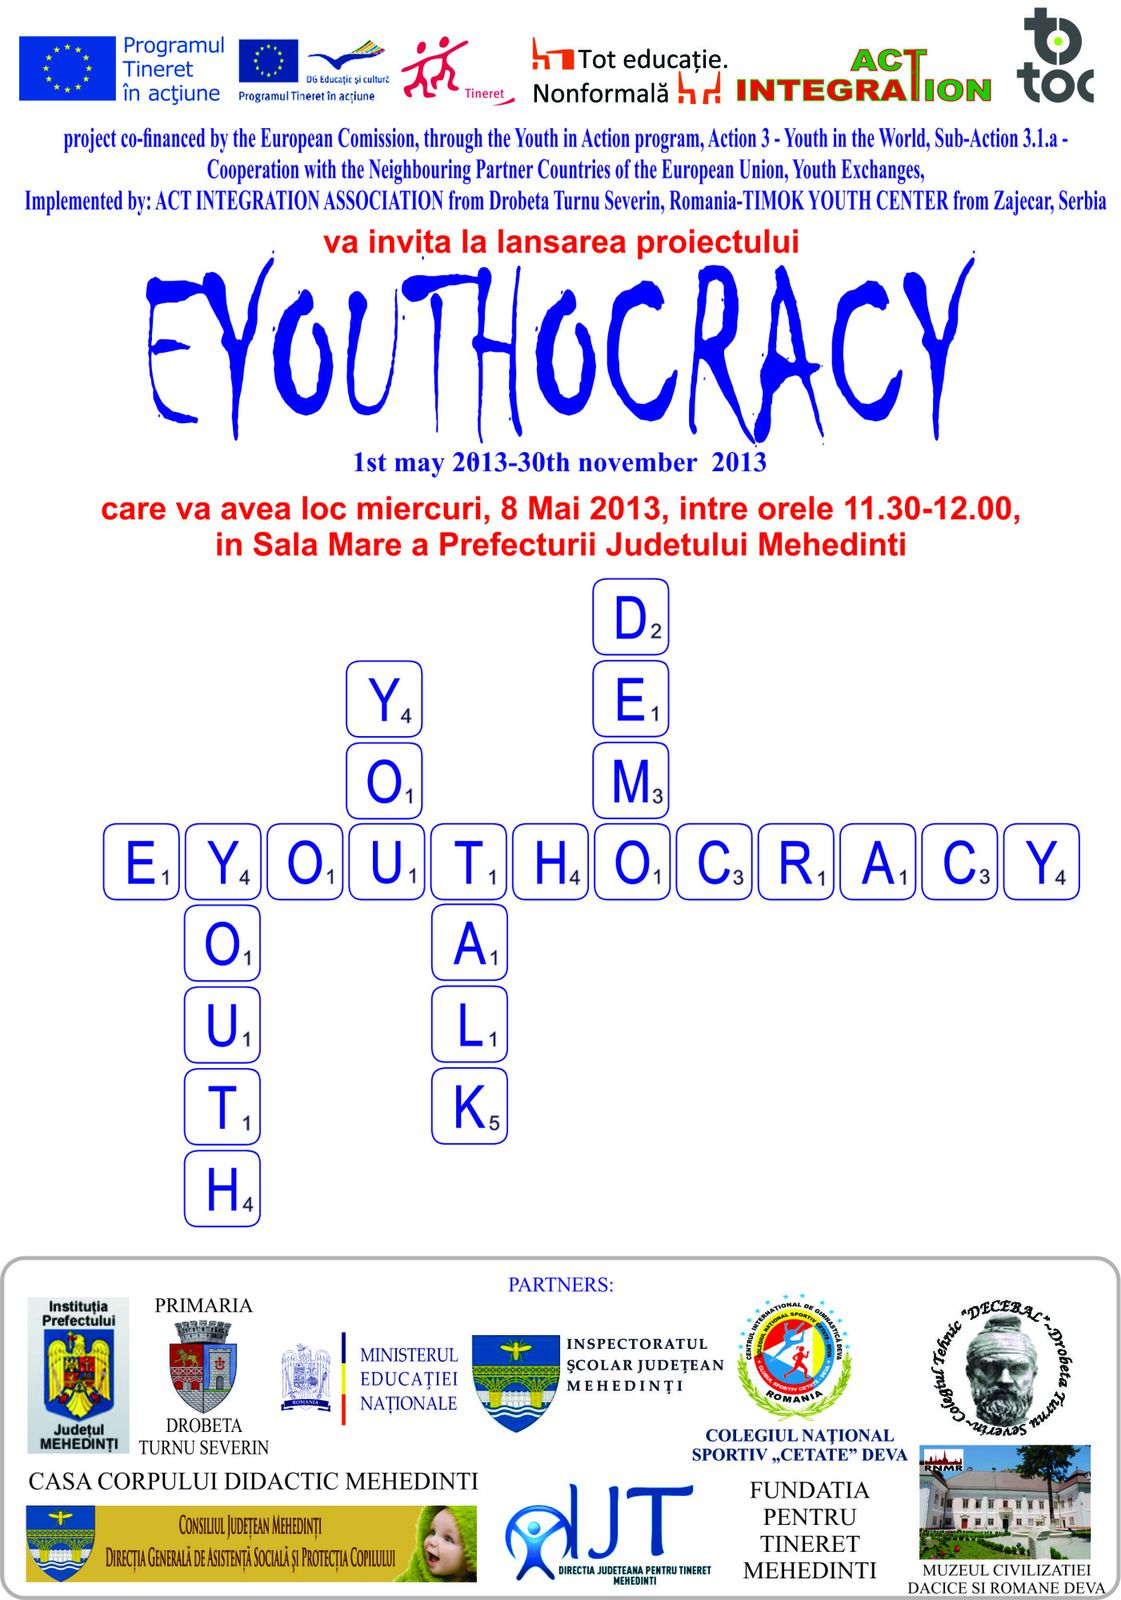 6th-8th may 2013-Eyouthocracy Project-The Advanced Planning Visit